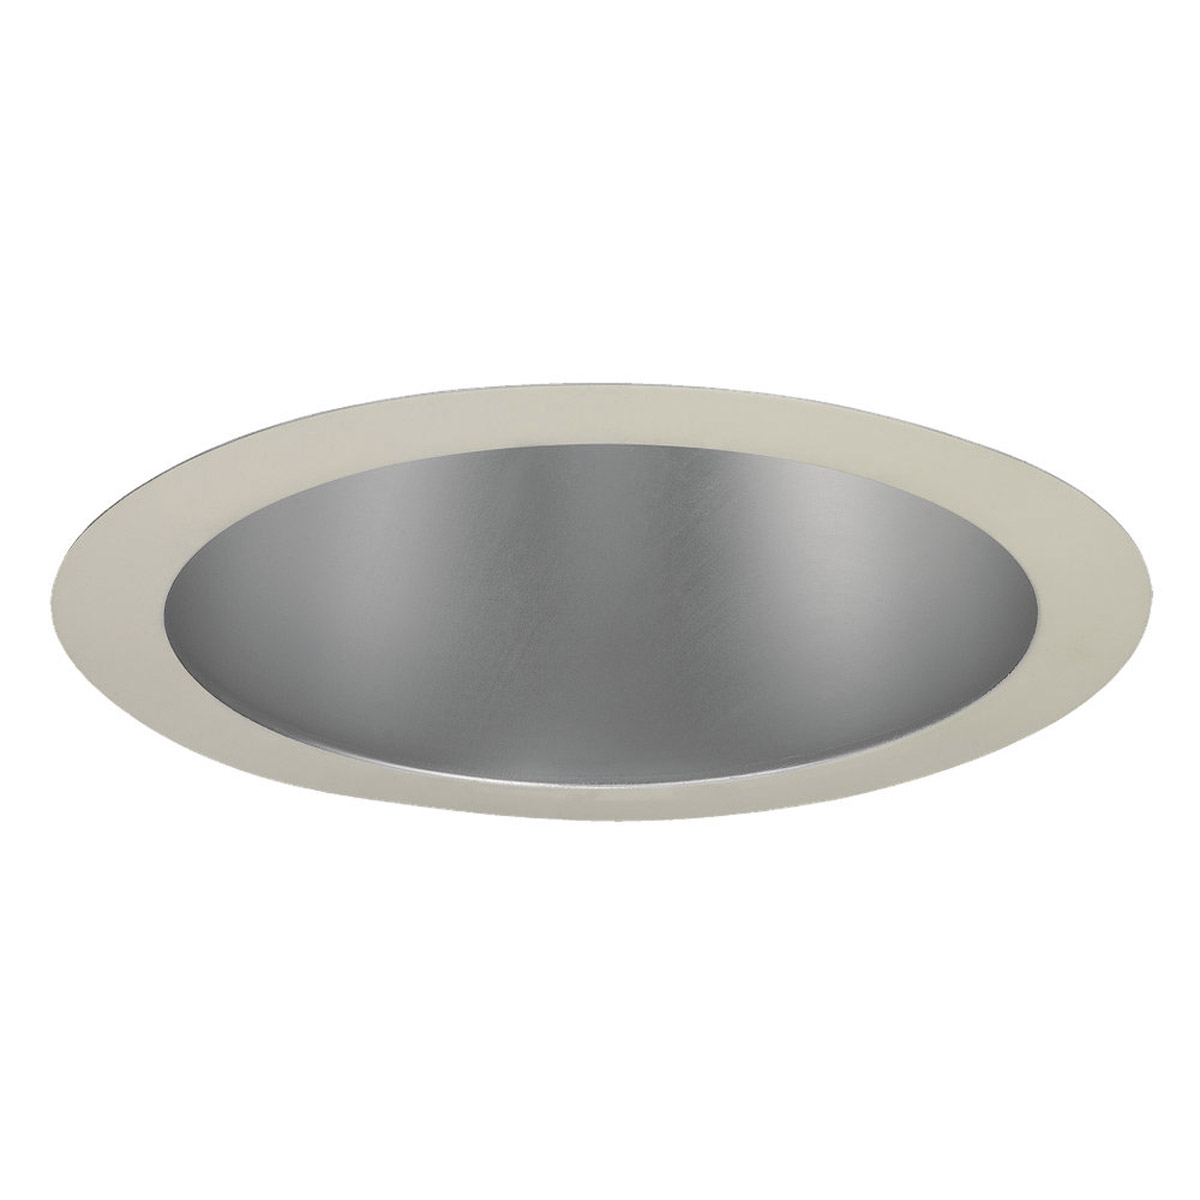 Sea Gull Lighting Signature Recessed Trim Only in Satin Nickel - White 11132AT-861 photo